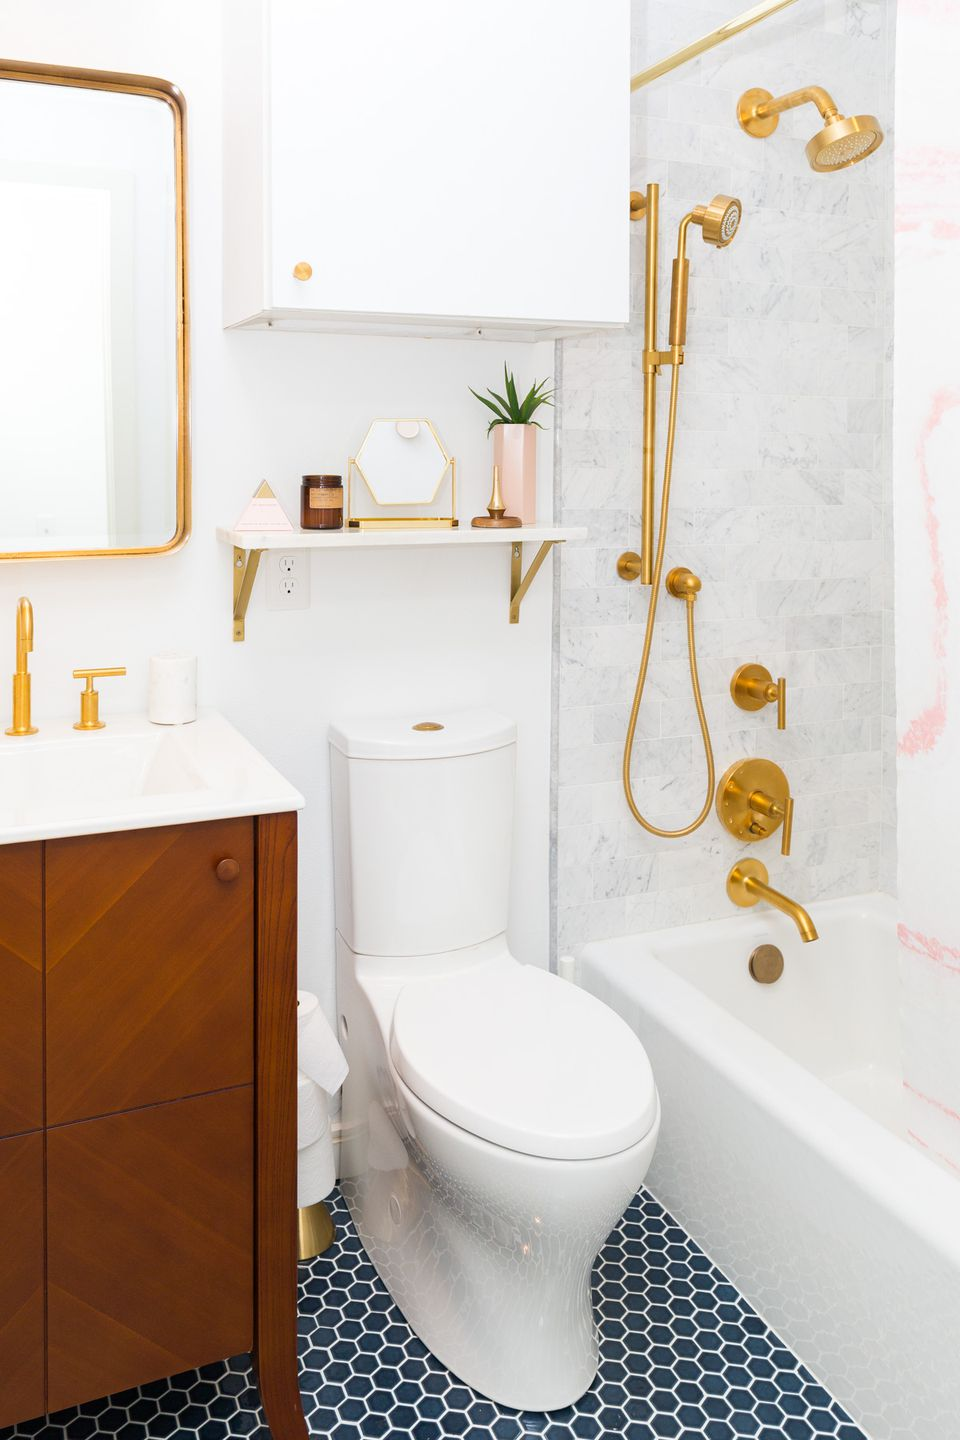 bathroom with gold fixtures